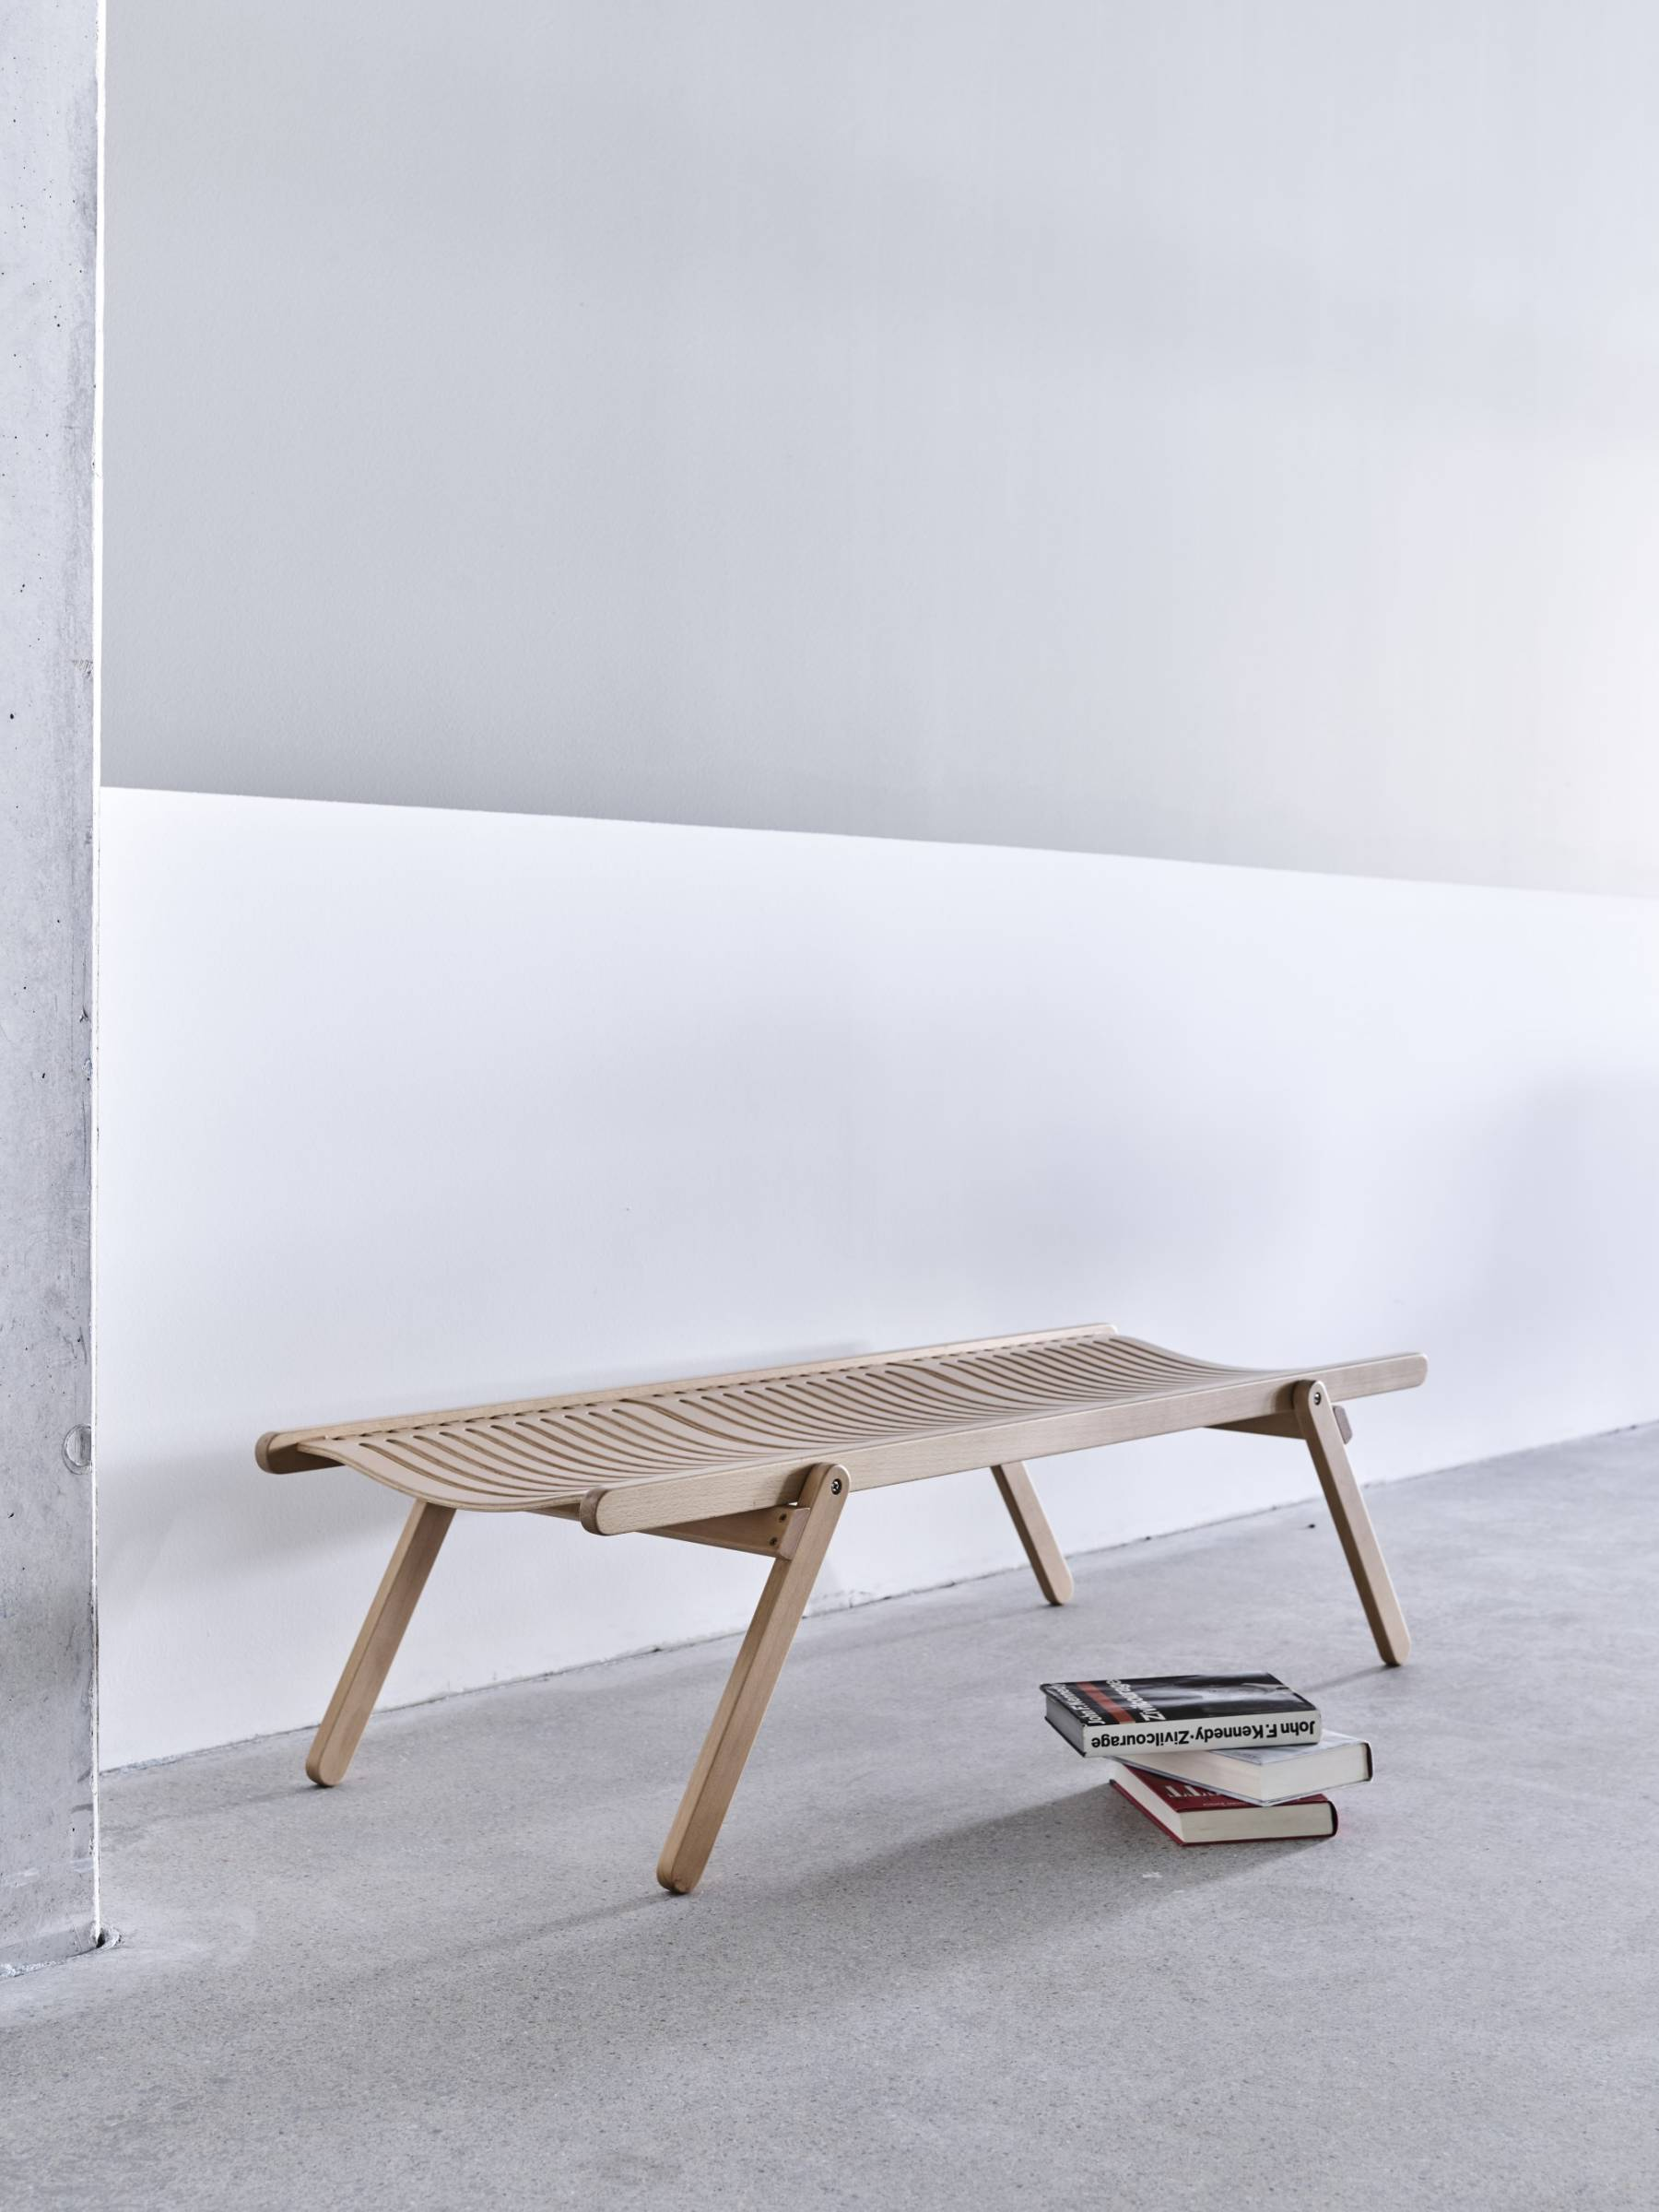 Rex Kralj Small Daybed